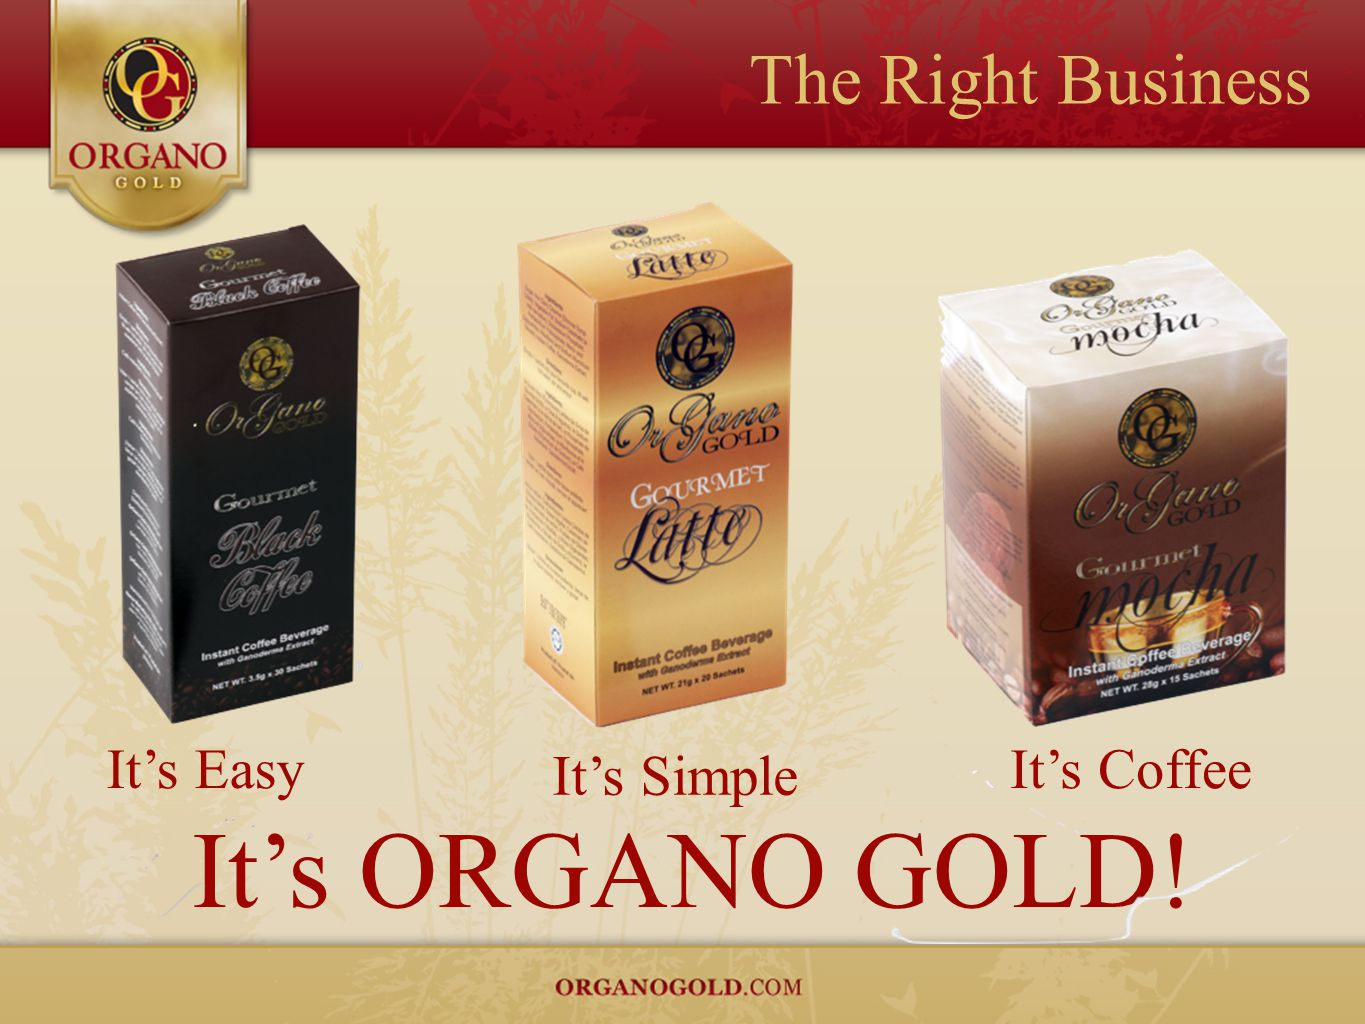 The Right Business It's Easy It's Coffee It's Simple It's ORGANO GOLD!